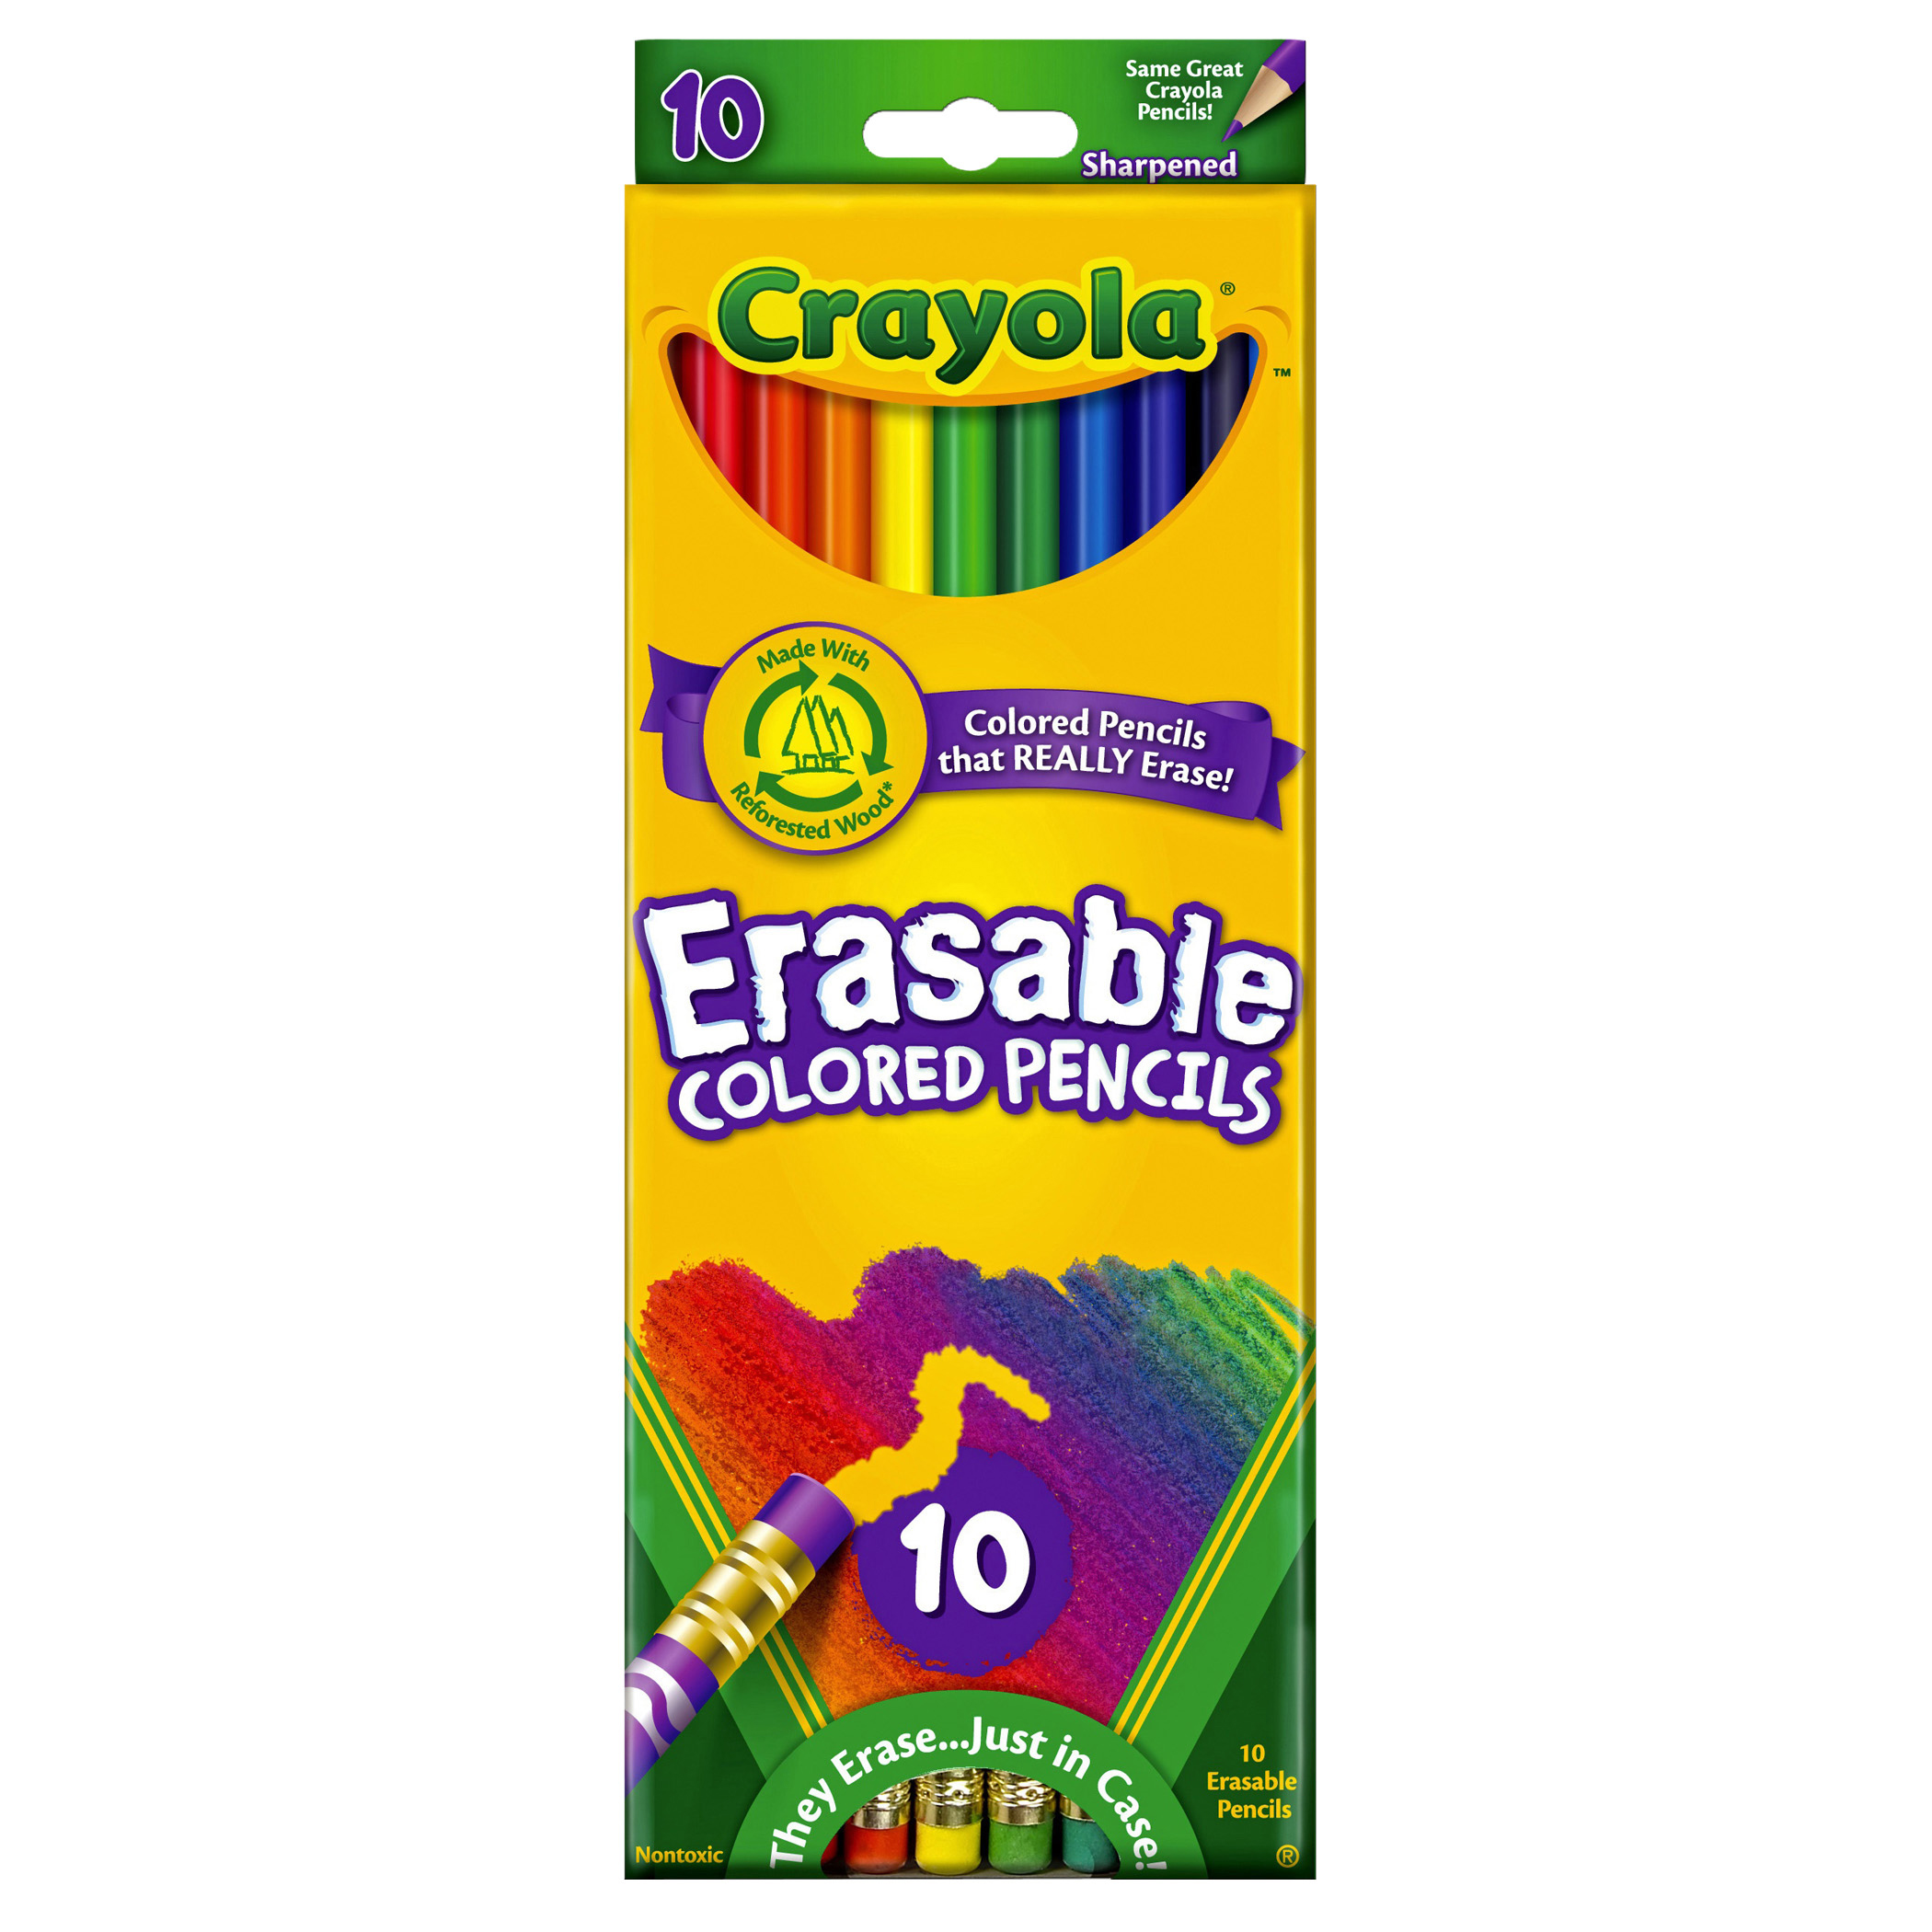 Crayola Erasable Colored Pencils, 10 Count, 6 Boxes